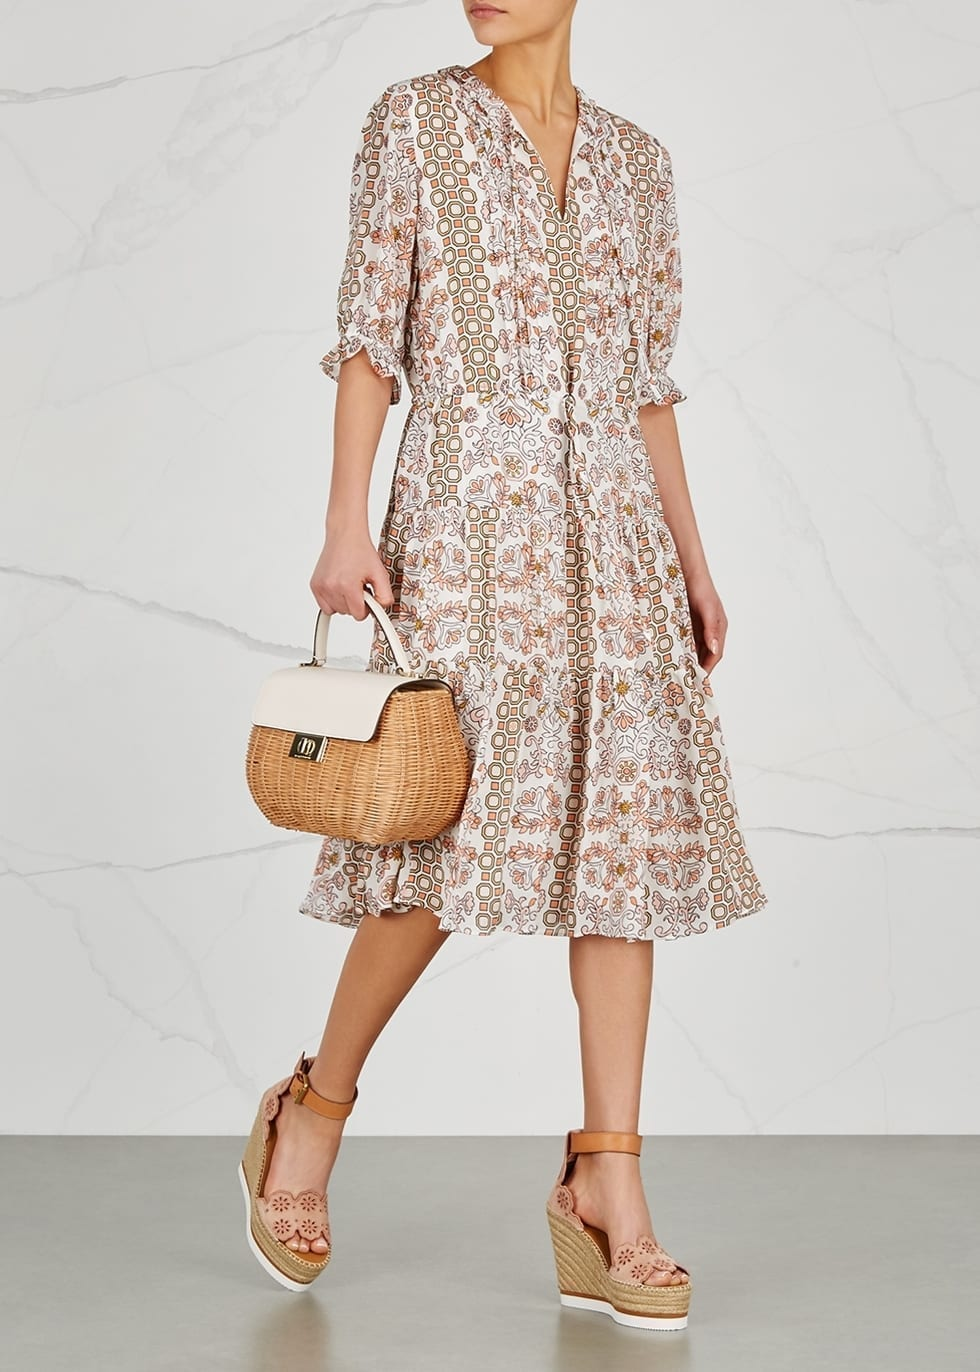 TORY BURCH Serena Silk Chiffon Ivory / Floral Printed Dress - We ...